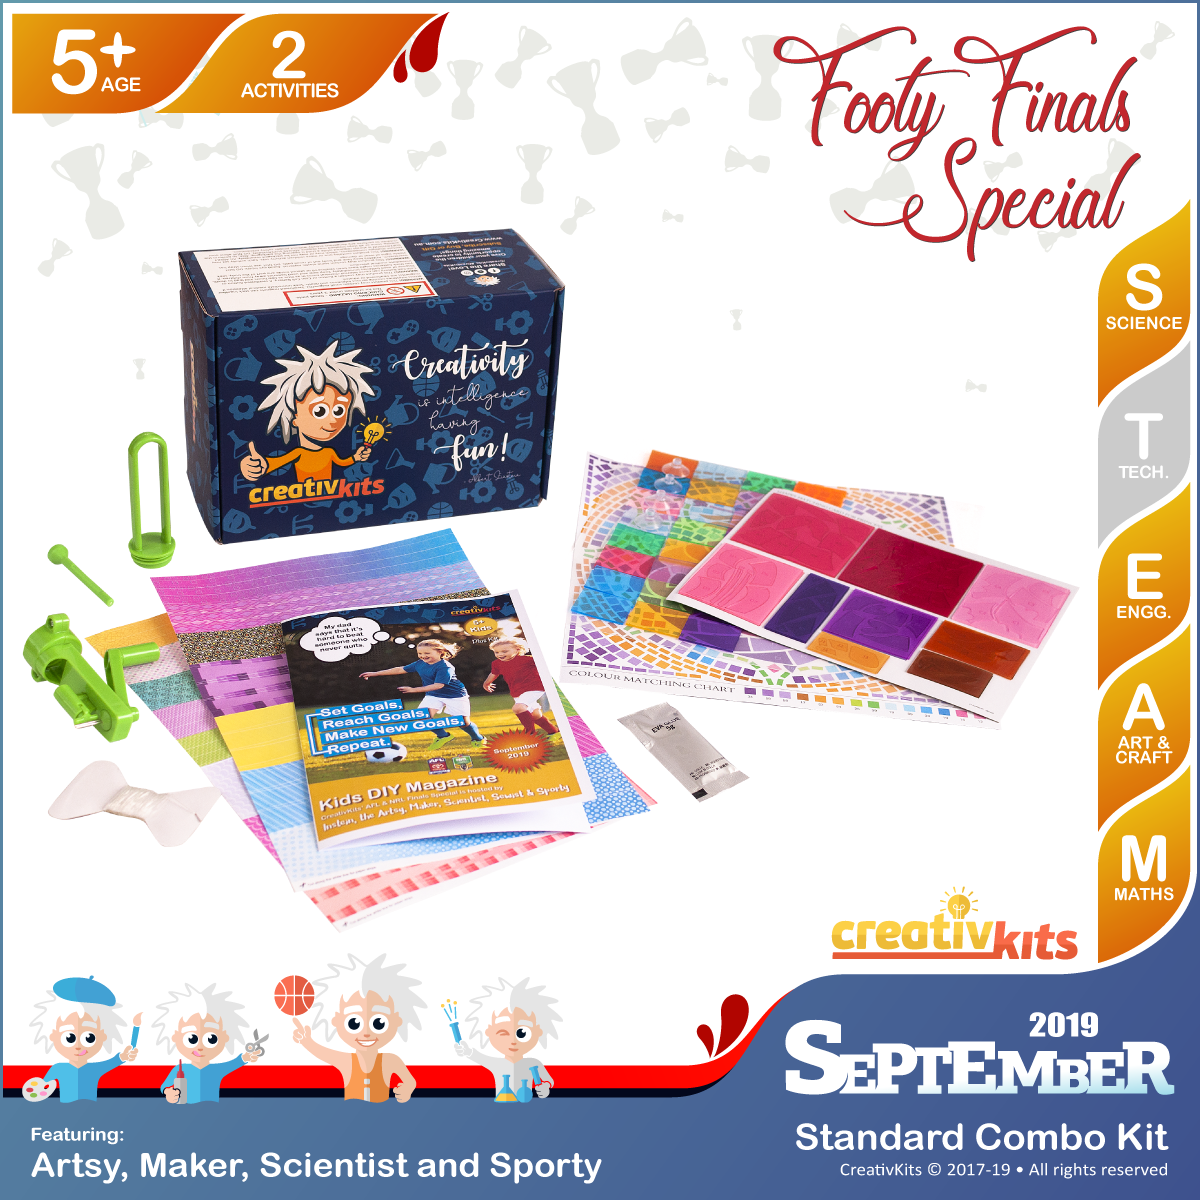 September Standard Combo Kit • Age 5 plus • Recycled Paper Beads and DIY Artistic Window Mosaic